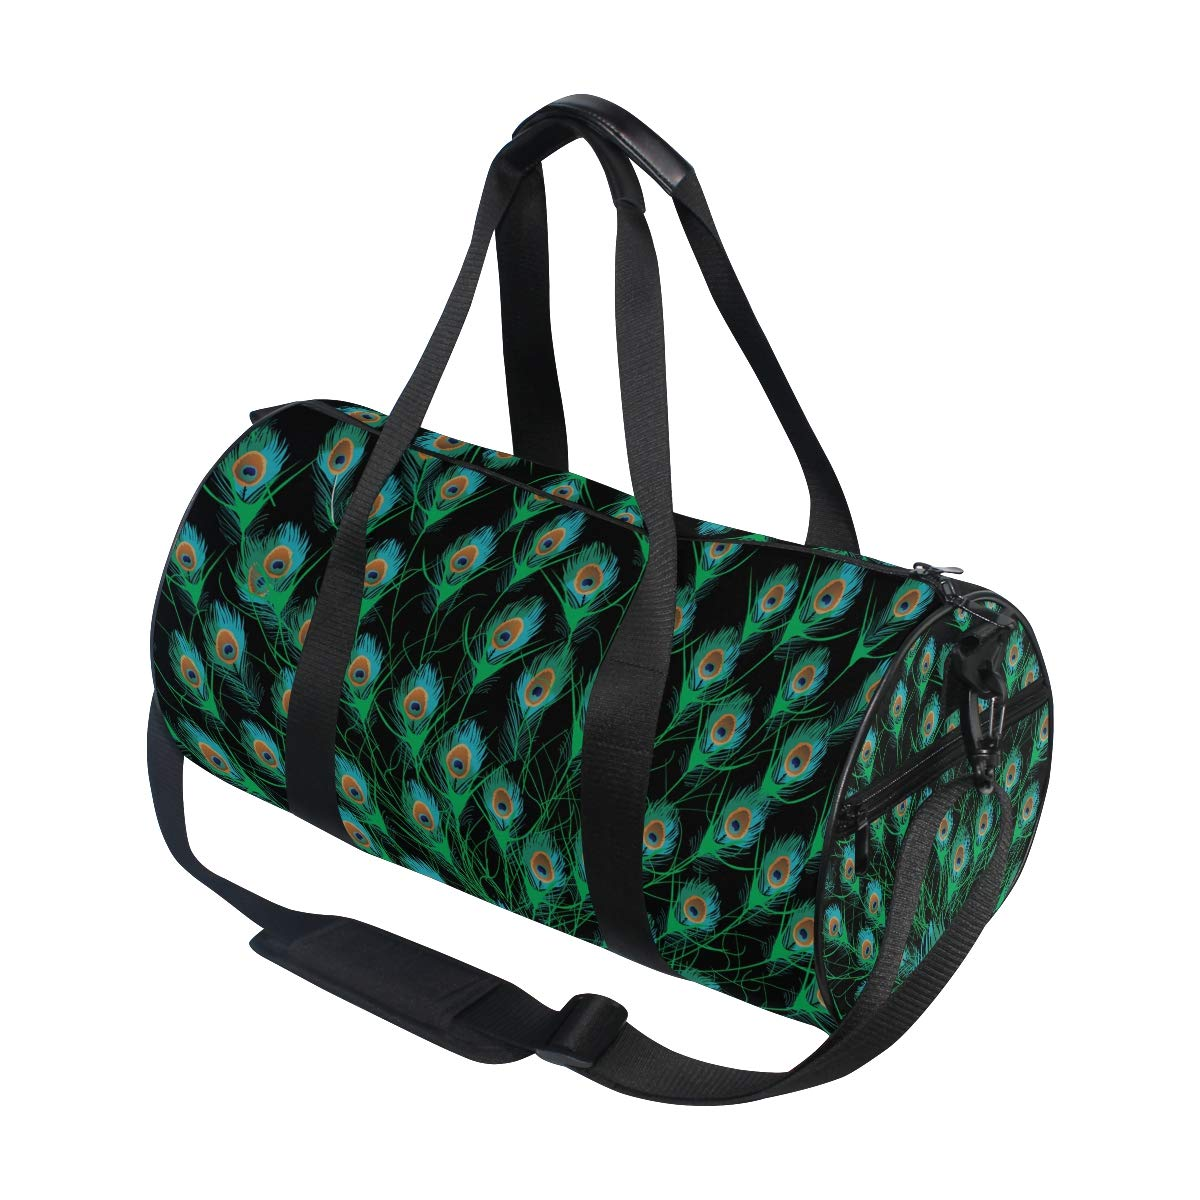 WIHVE Gym Duffel Bag Peacock Feathers Black Background Sports Lightweight Canvas Travel Luggage Bag